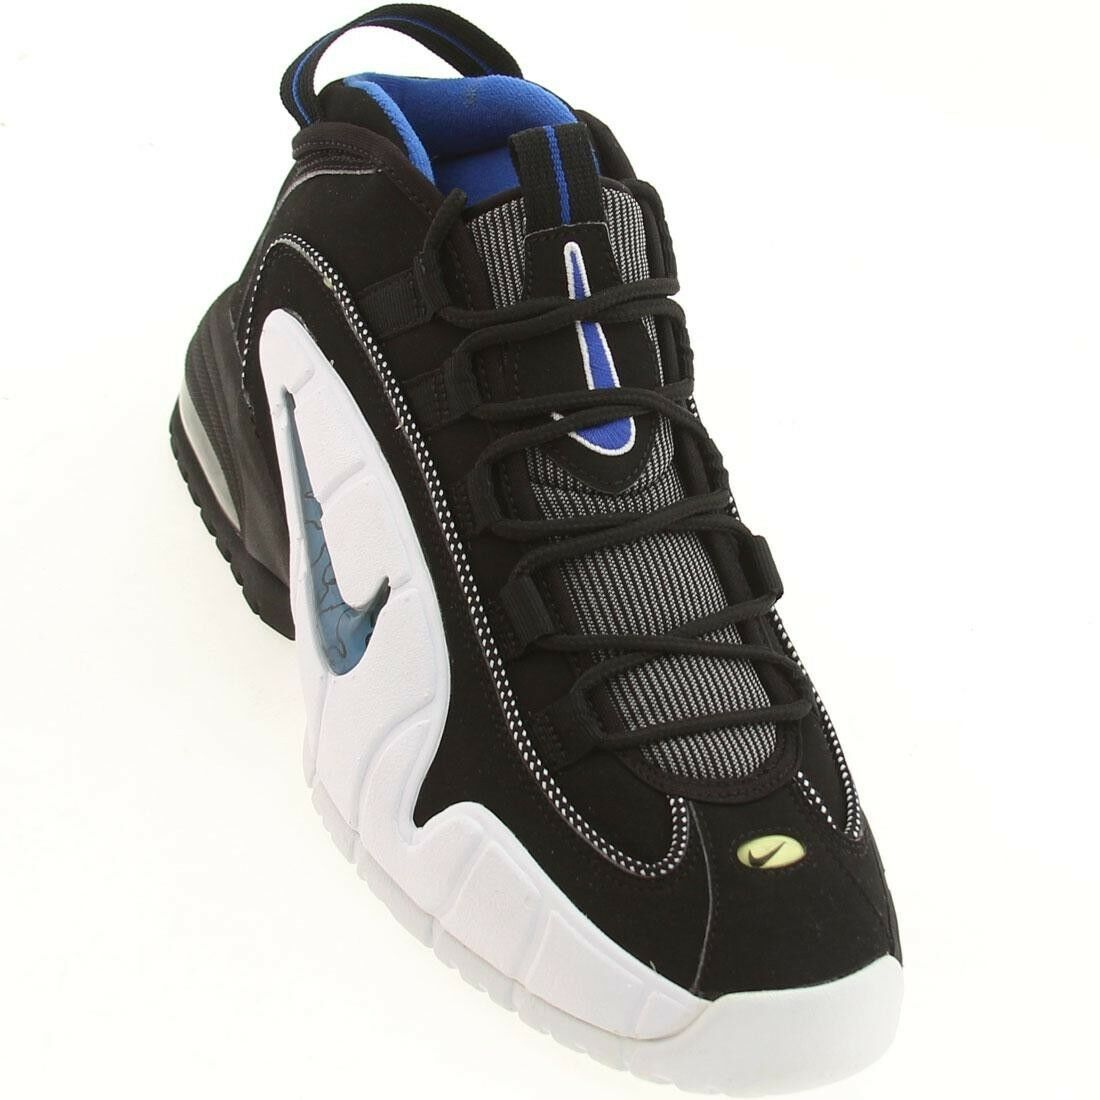 311089-041 Nike Air Max Penny 1 nero Varsity Royal 2006 Release